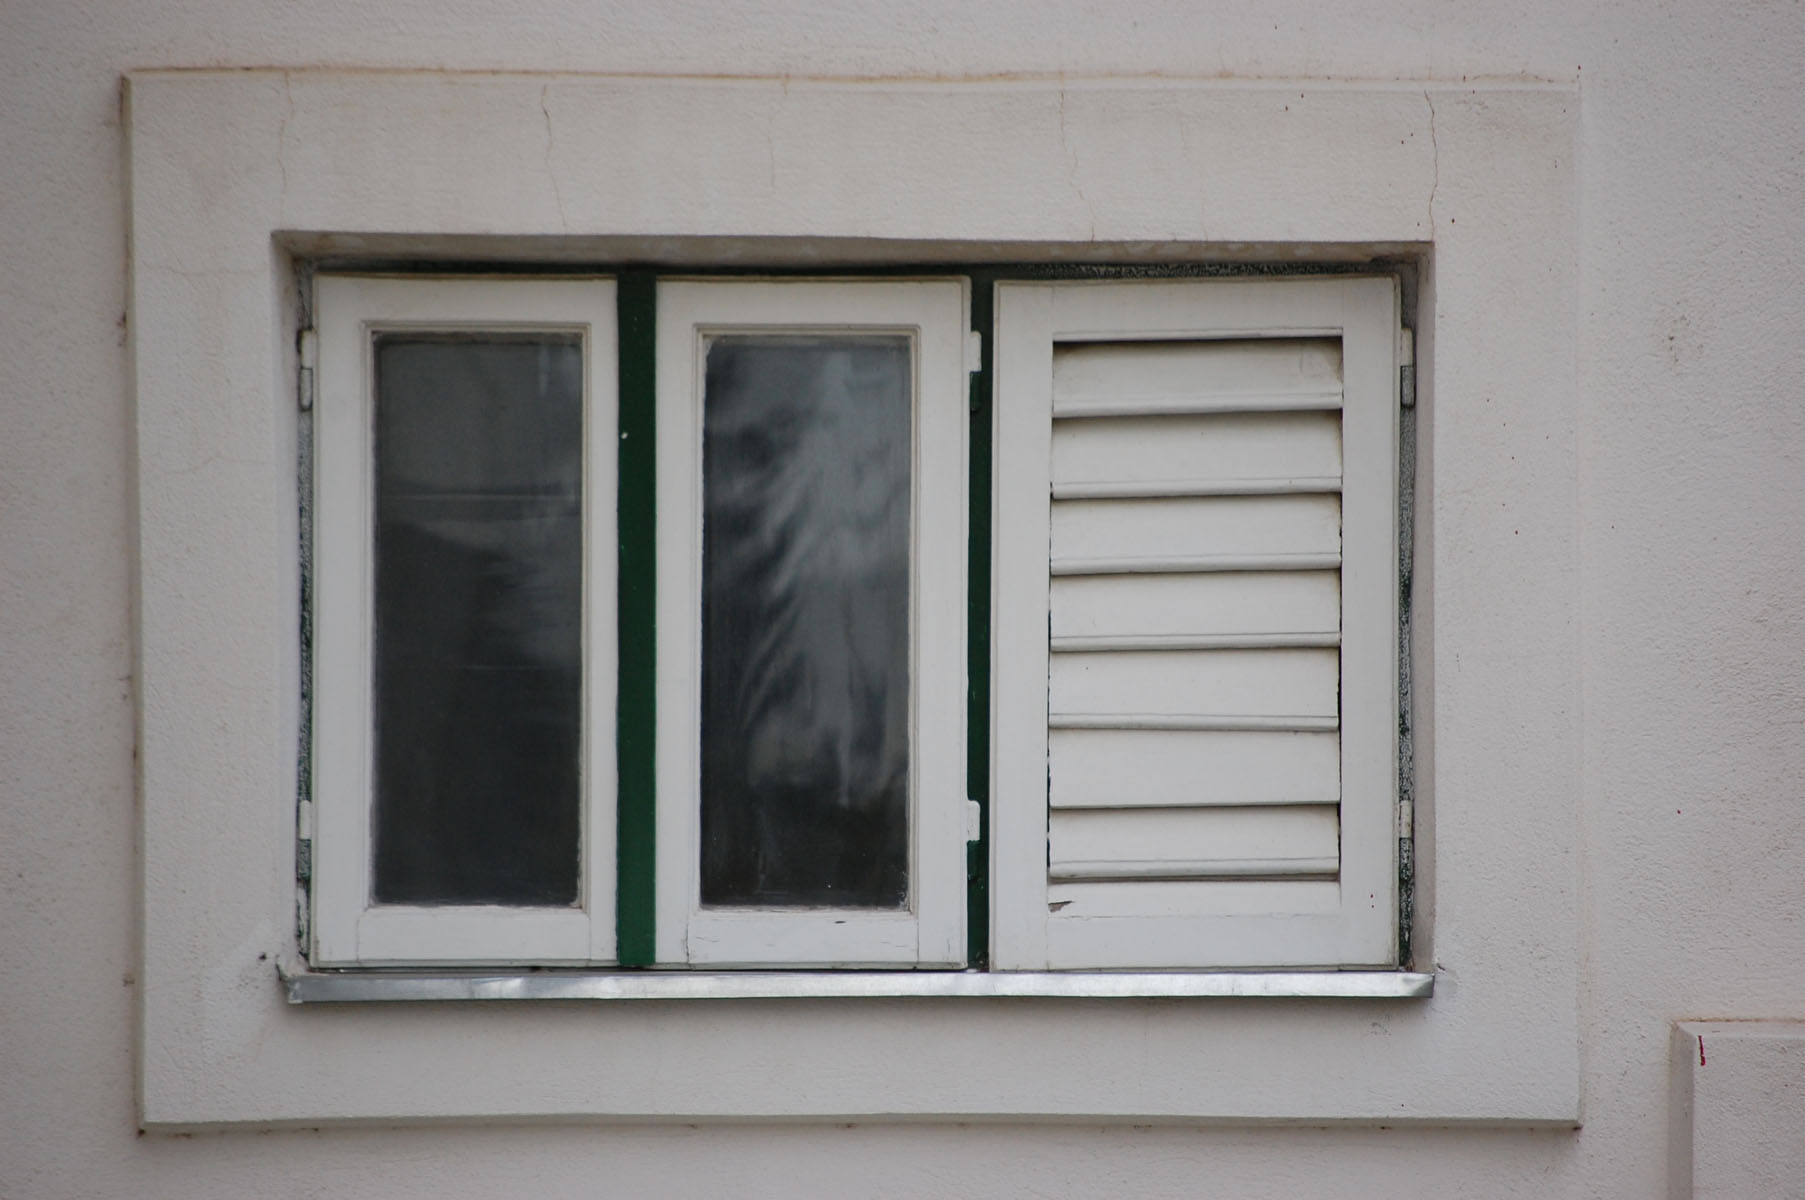 Cost of new windows for house daily prompt ladyleemanila for New house windows